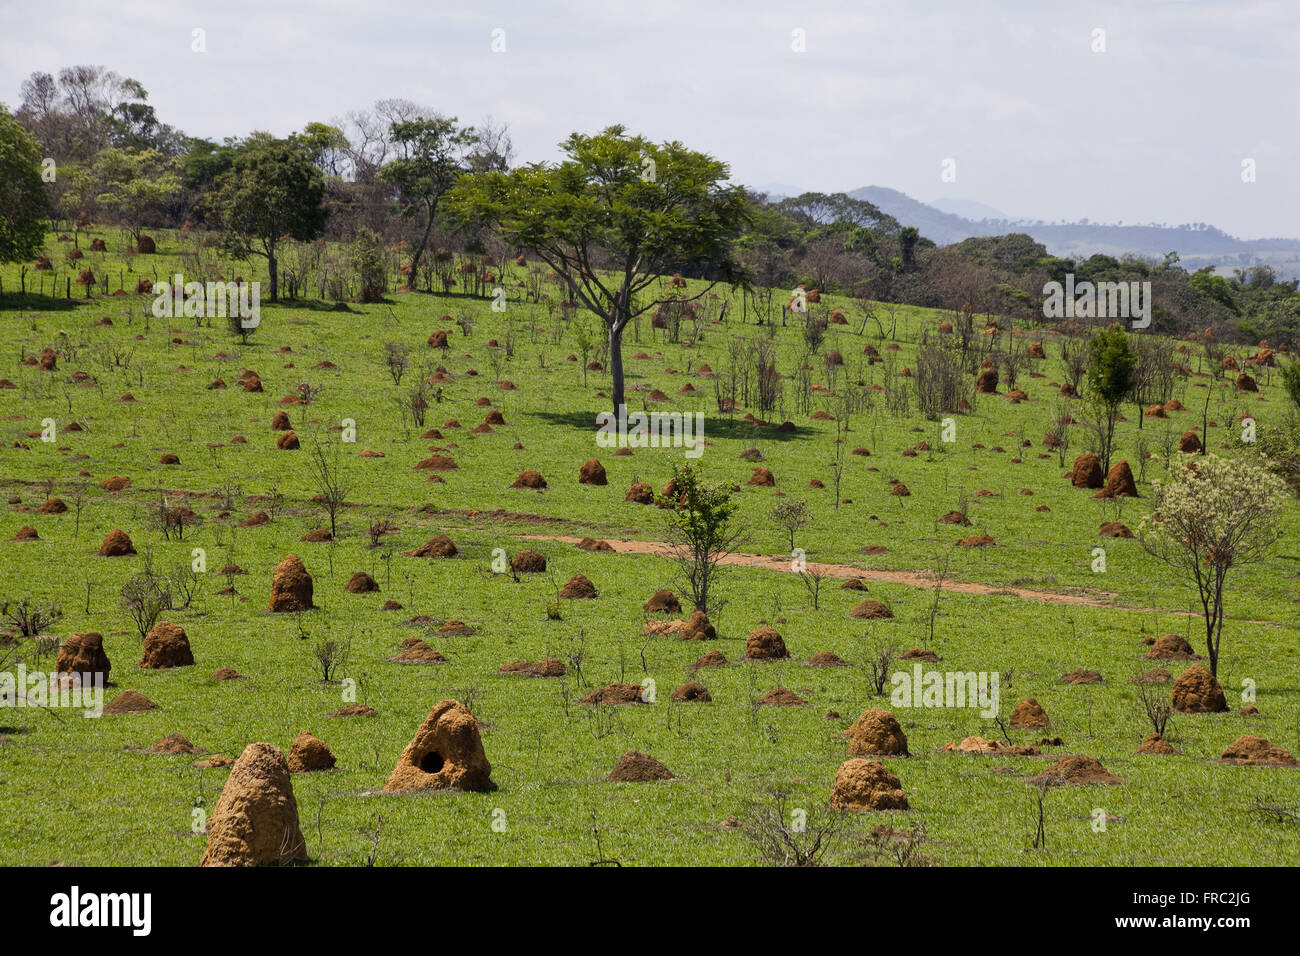 Grassland taken by termites - Stock Image